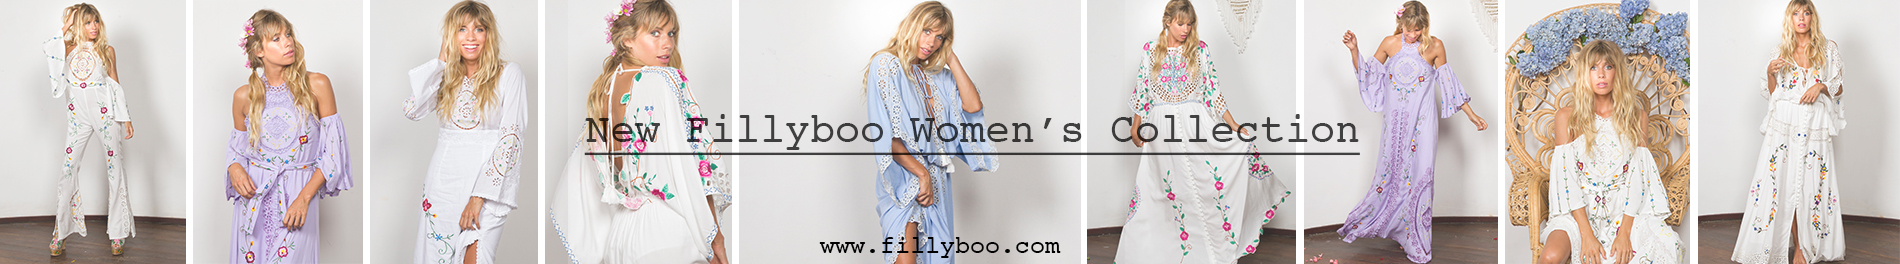 Fillyboo Women's Collection Launch